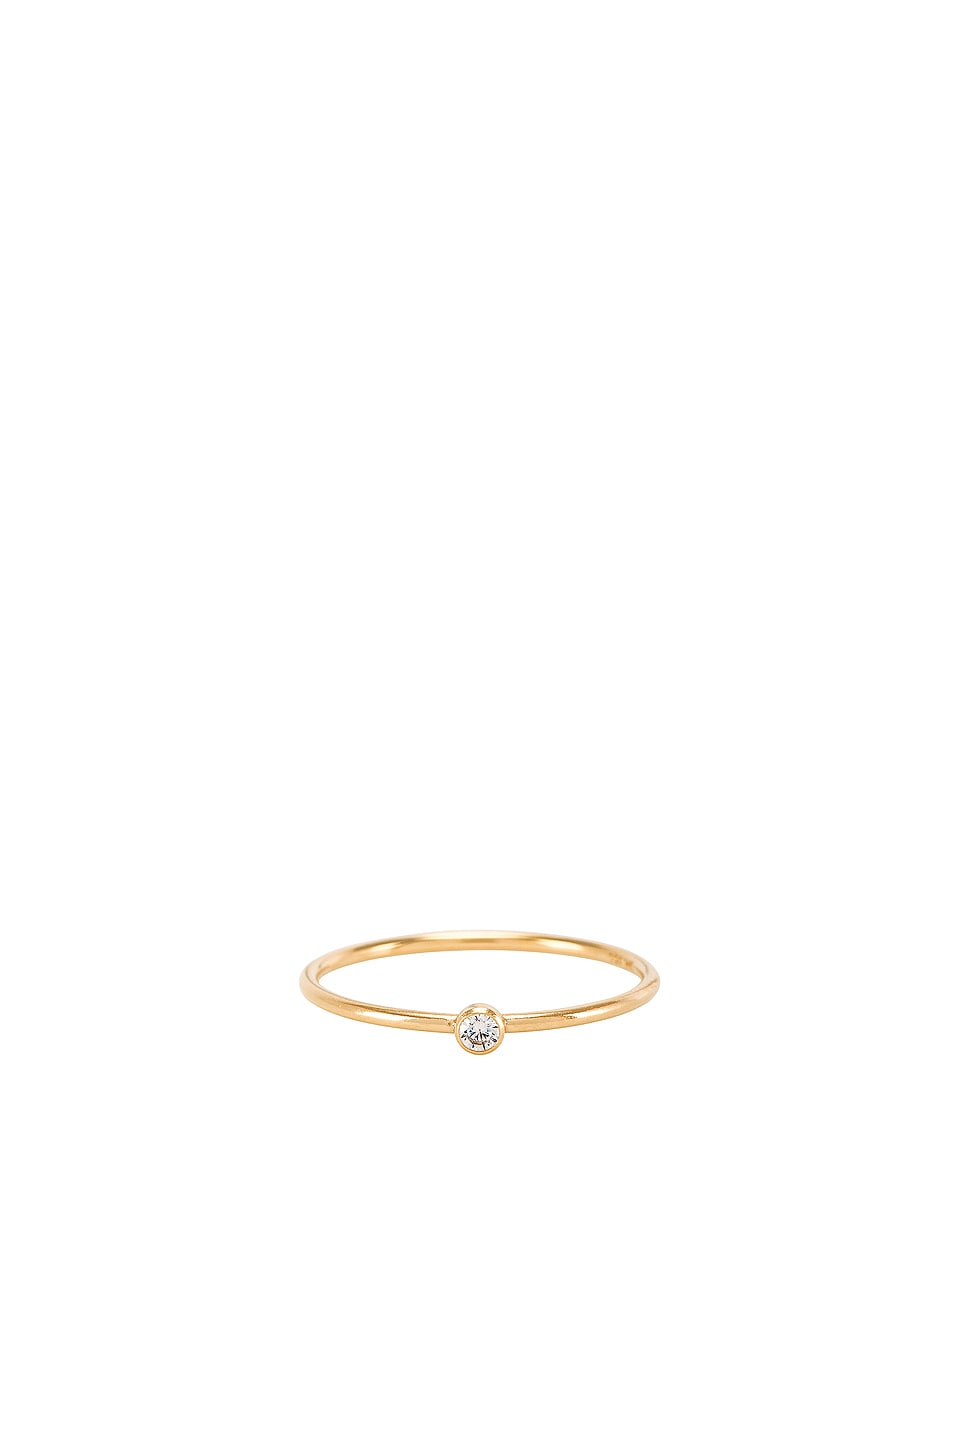 Natalie B Jewelry Gio Plain Stacking Ring in Gold